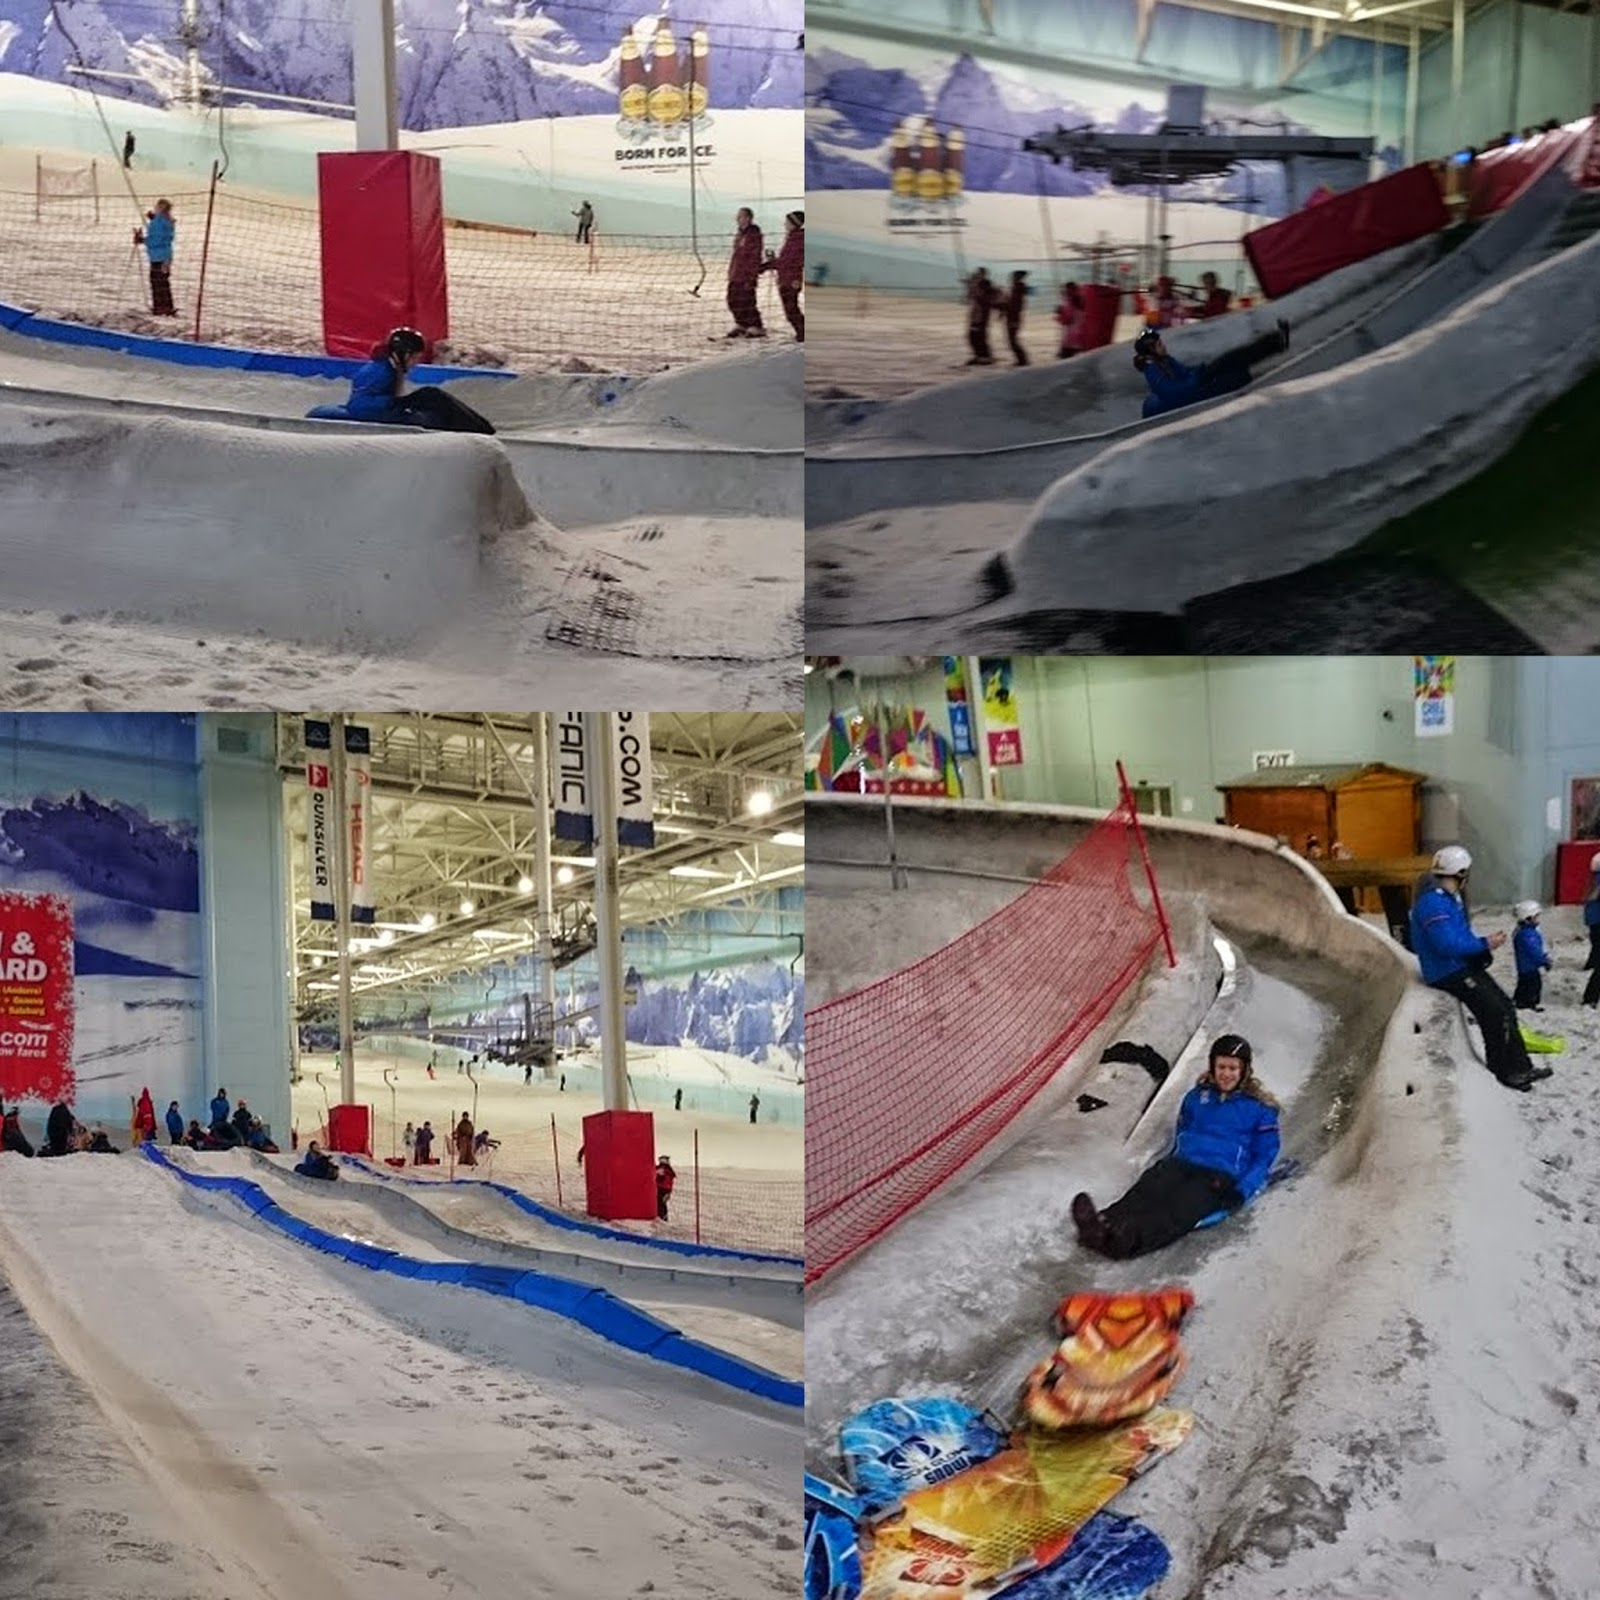 Snow Play for 6 year olds at Chill Factore in Manchester